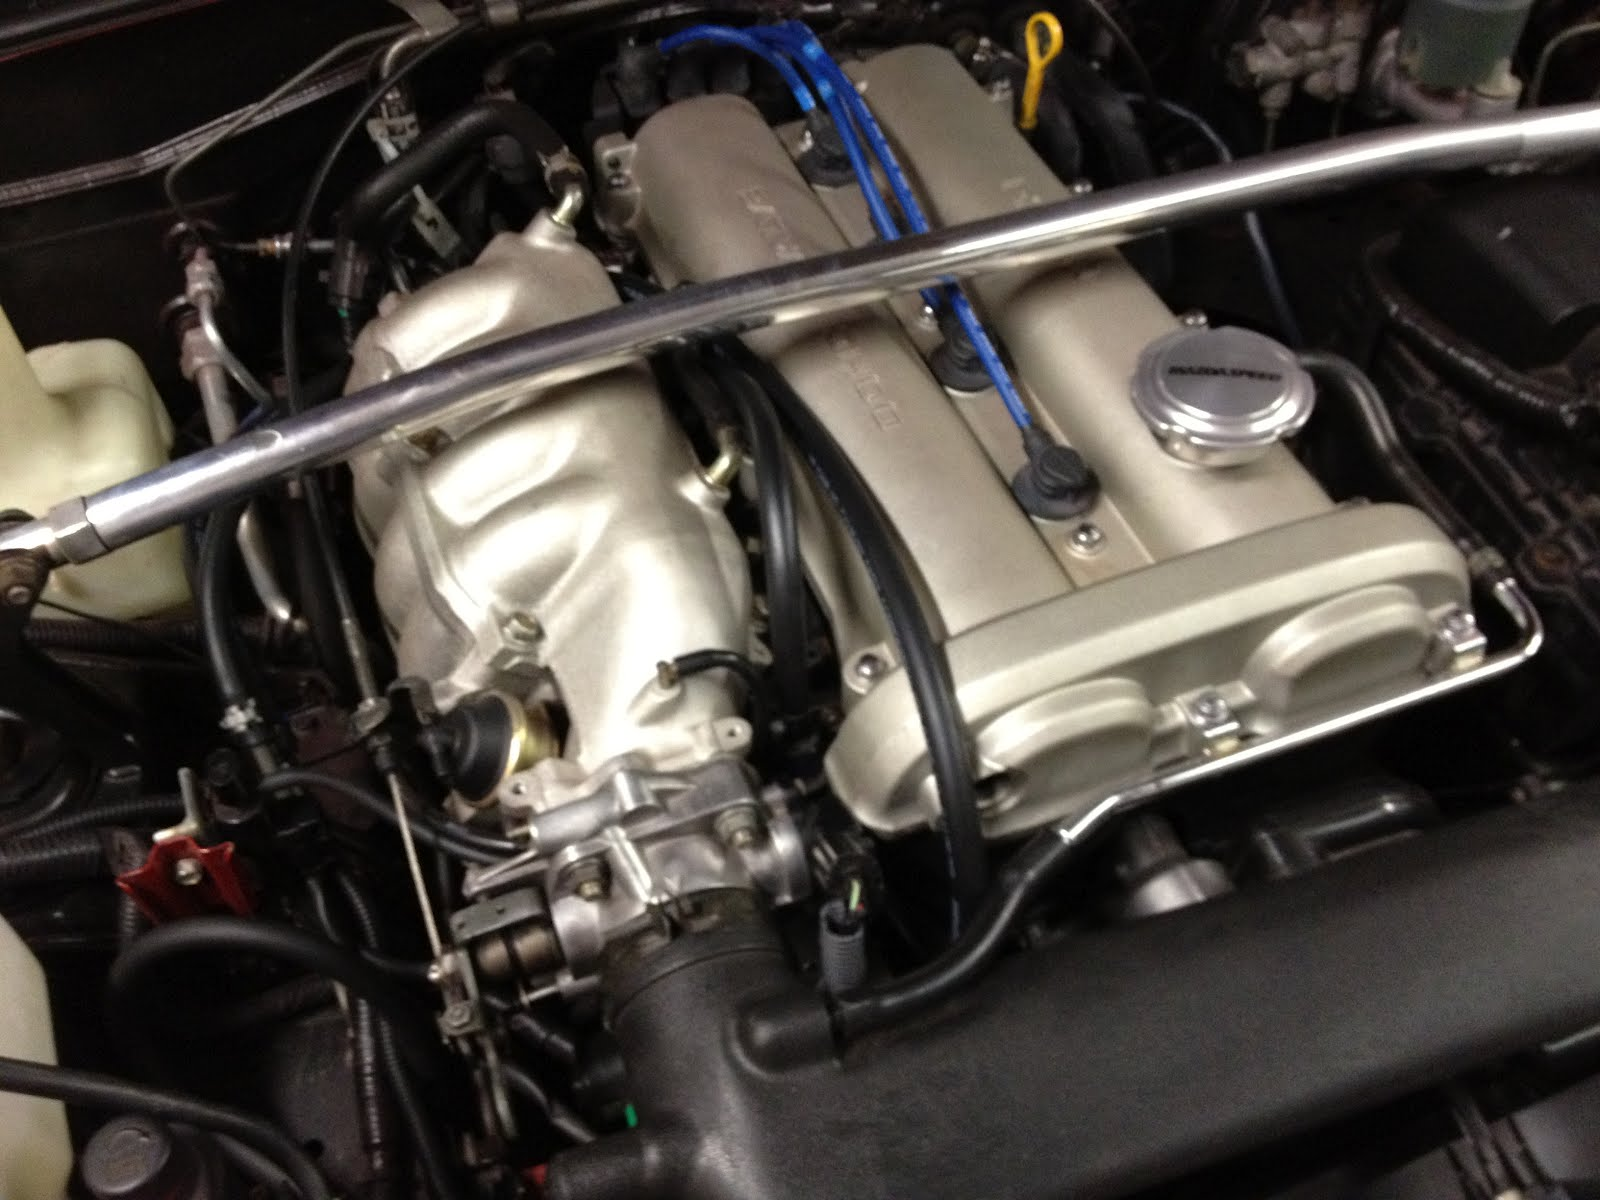 hose_route morrison's garage update to '99 miata head on '94 engine fuel